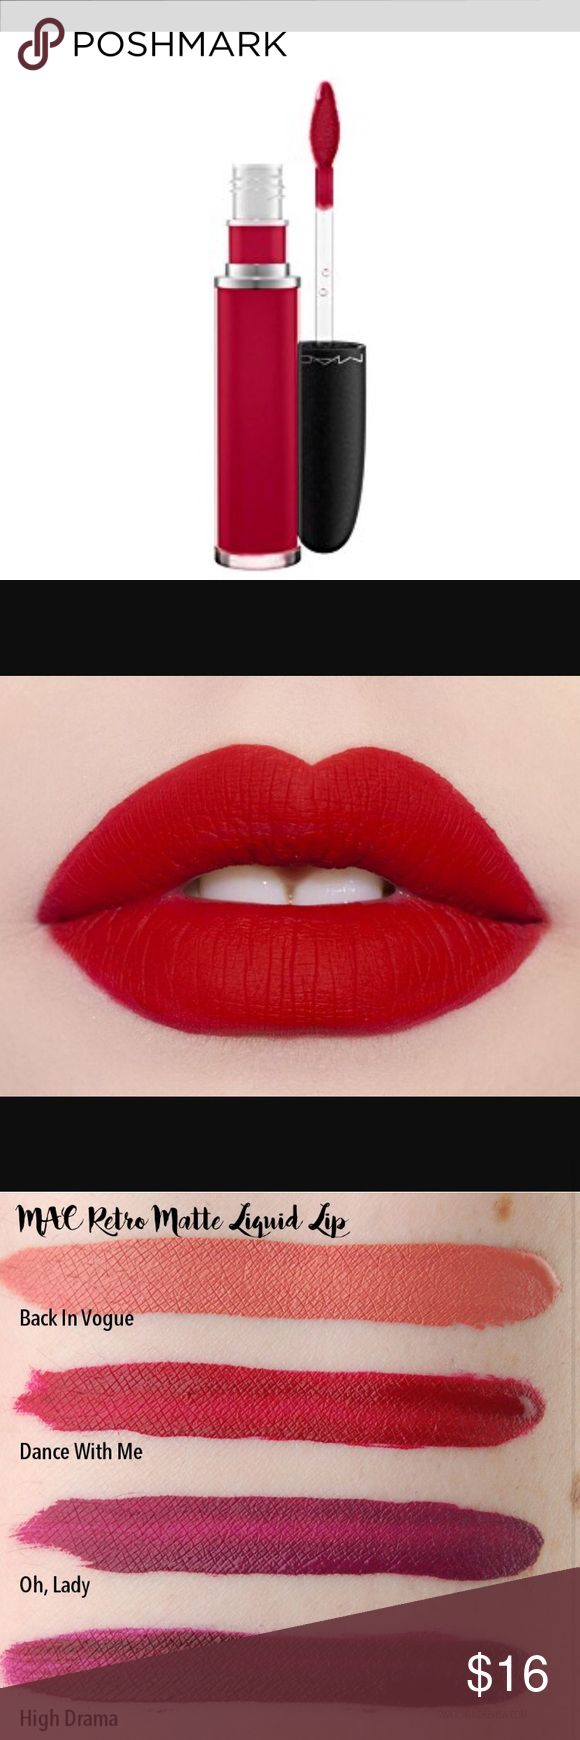 Mac Cranberry Eyeshadow Review Swatch And Demo: 17 Best Ideas About Mac Cranberry On Pinterest